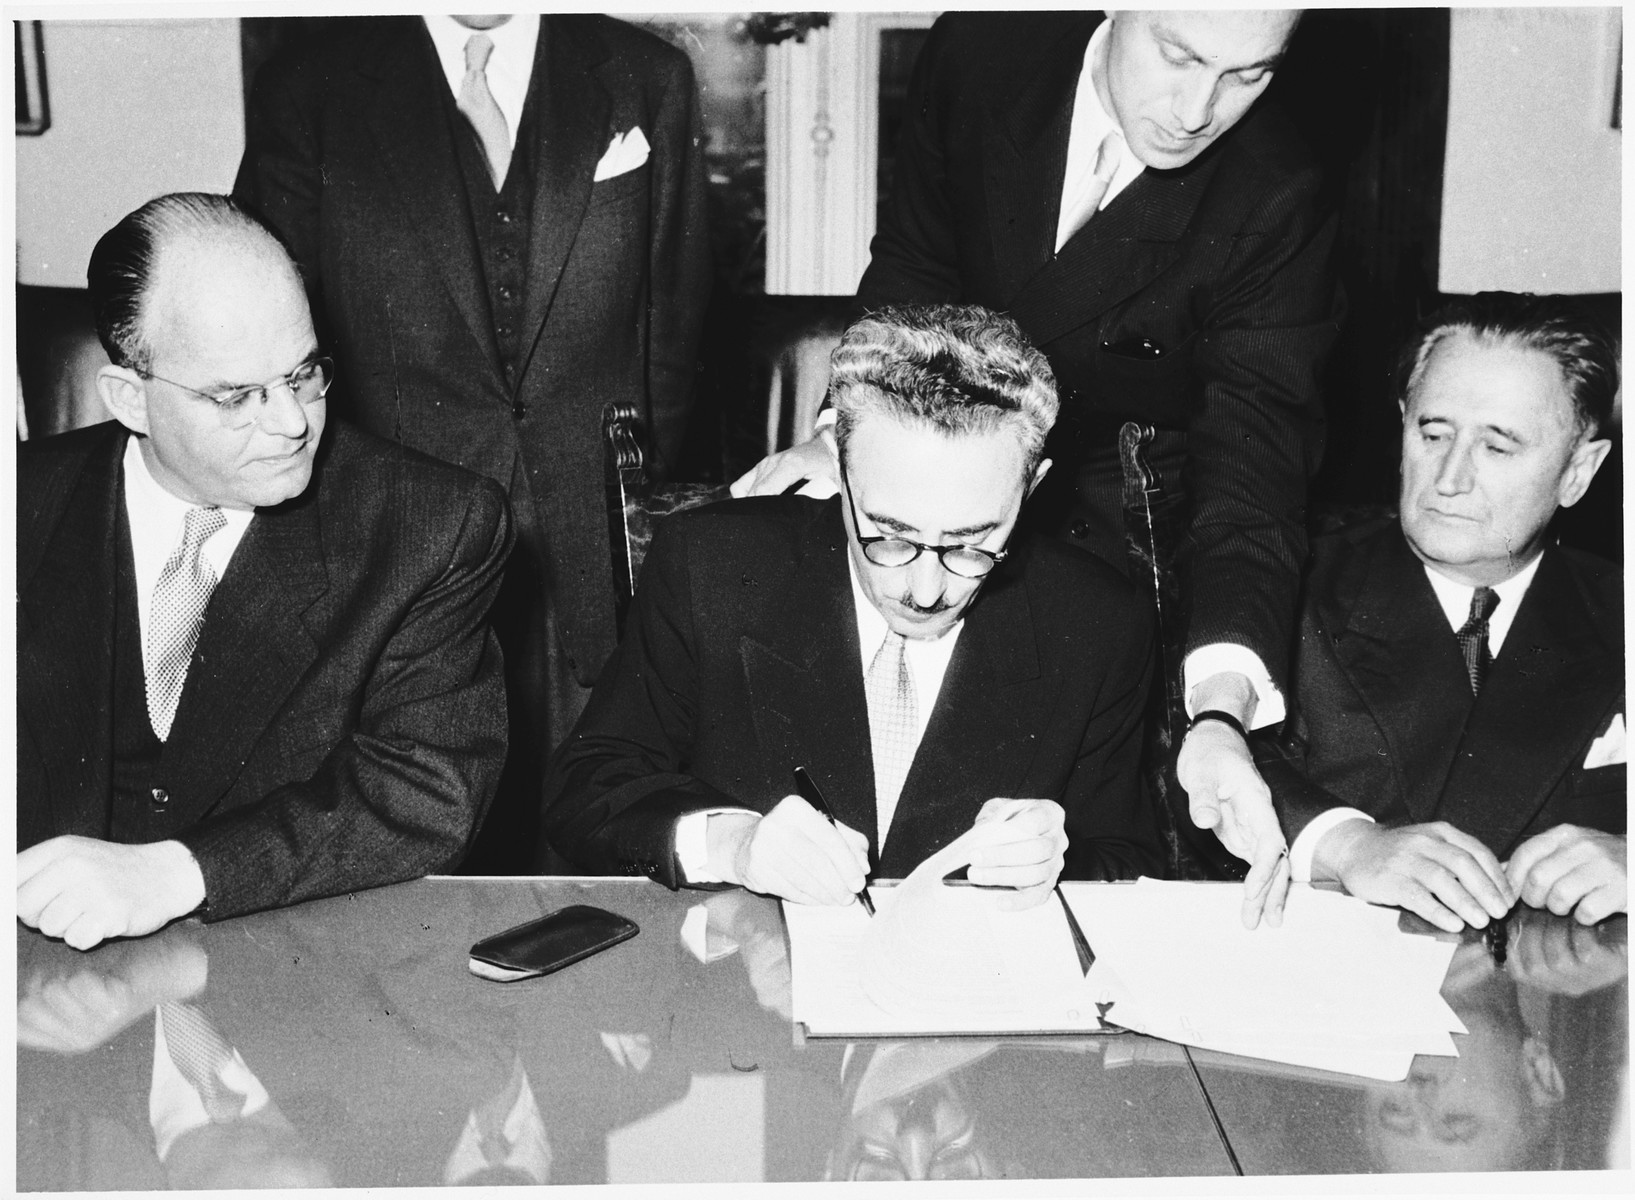 Israeli Foreign Minister Moshe Sharett signing the Reparations Agreement between West Germany, Israel, and the Committee on Jewish Material Claims.  Pictured seated from left to right are Giora Josephtal, Moshe Sharett and Nahum Goldmann.